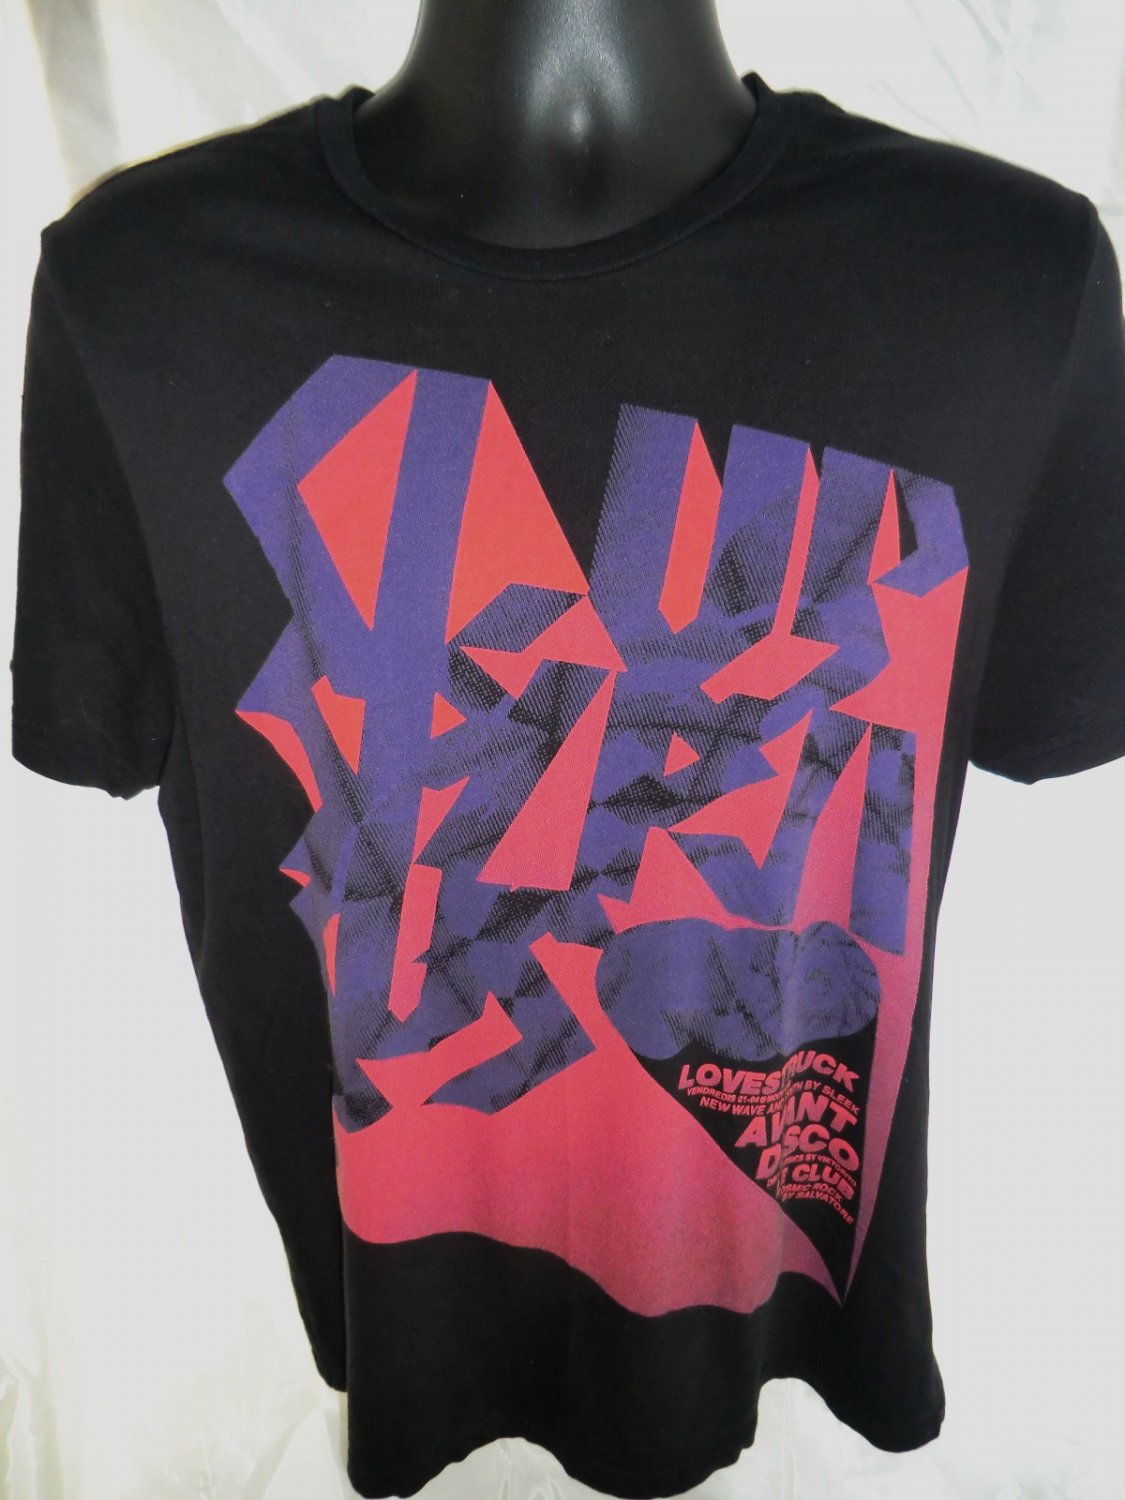 Cool Club T-Shirt Size Medium Disco Dancing